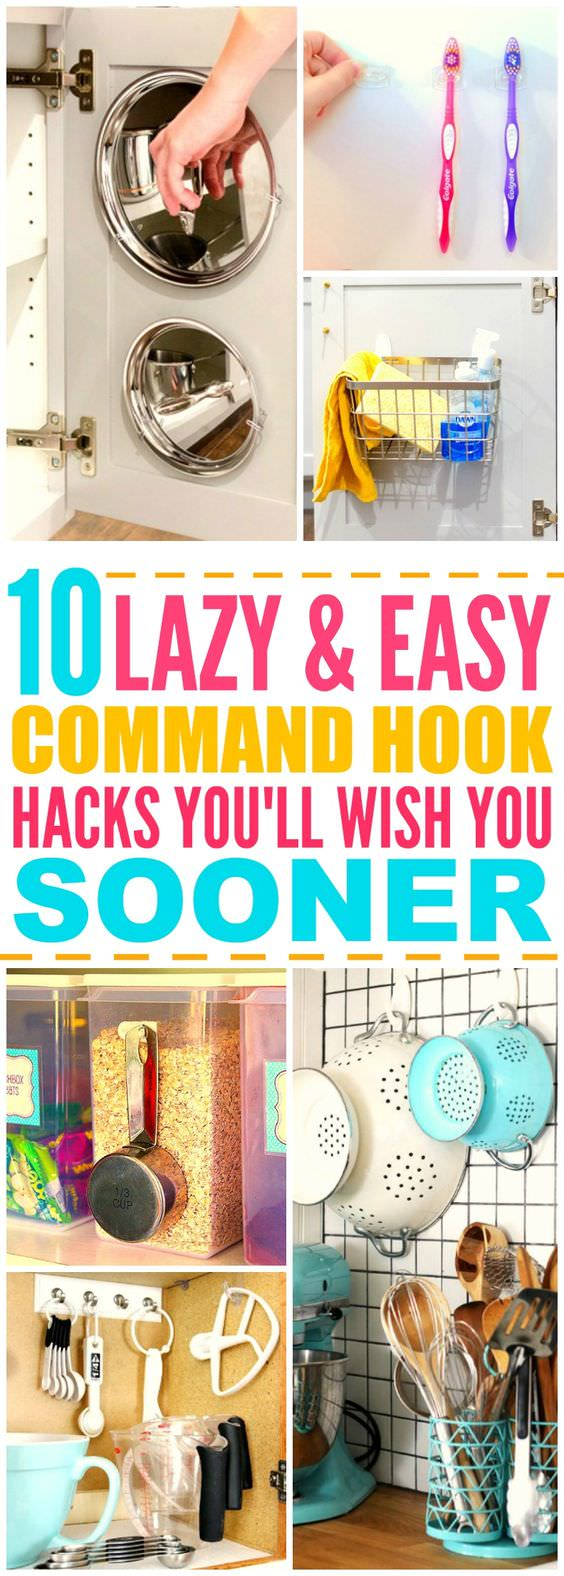 You don't believe but the tiny little command hooks can be so useful in home organization. Here're the 10 life changing ways to use Command hooks, must check out!